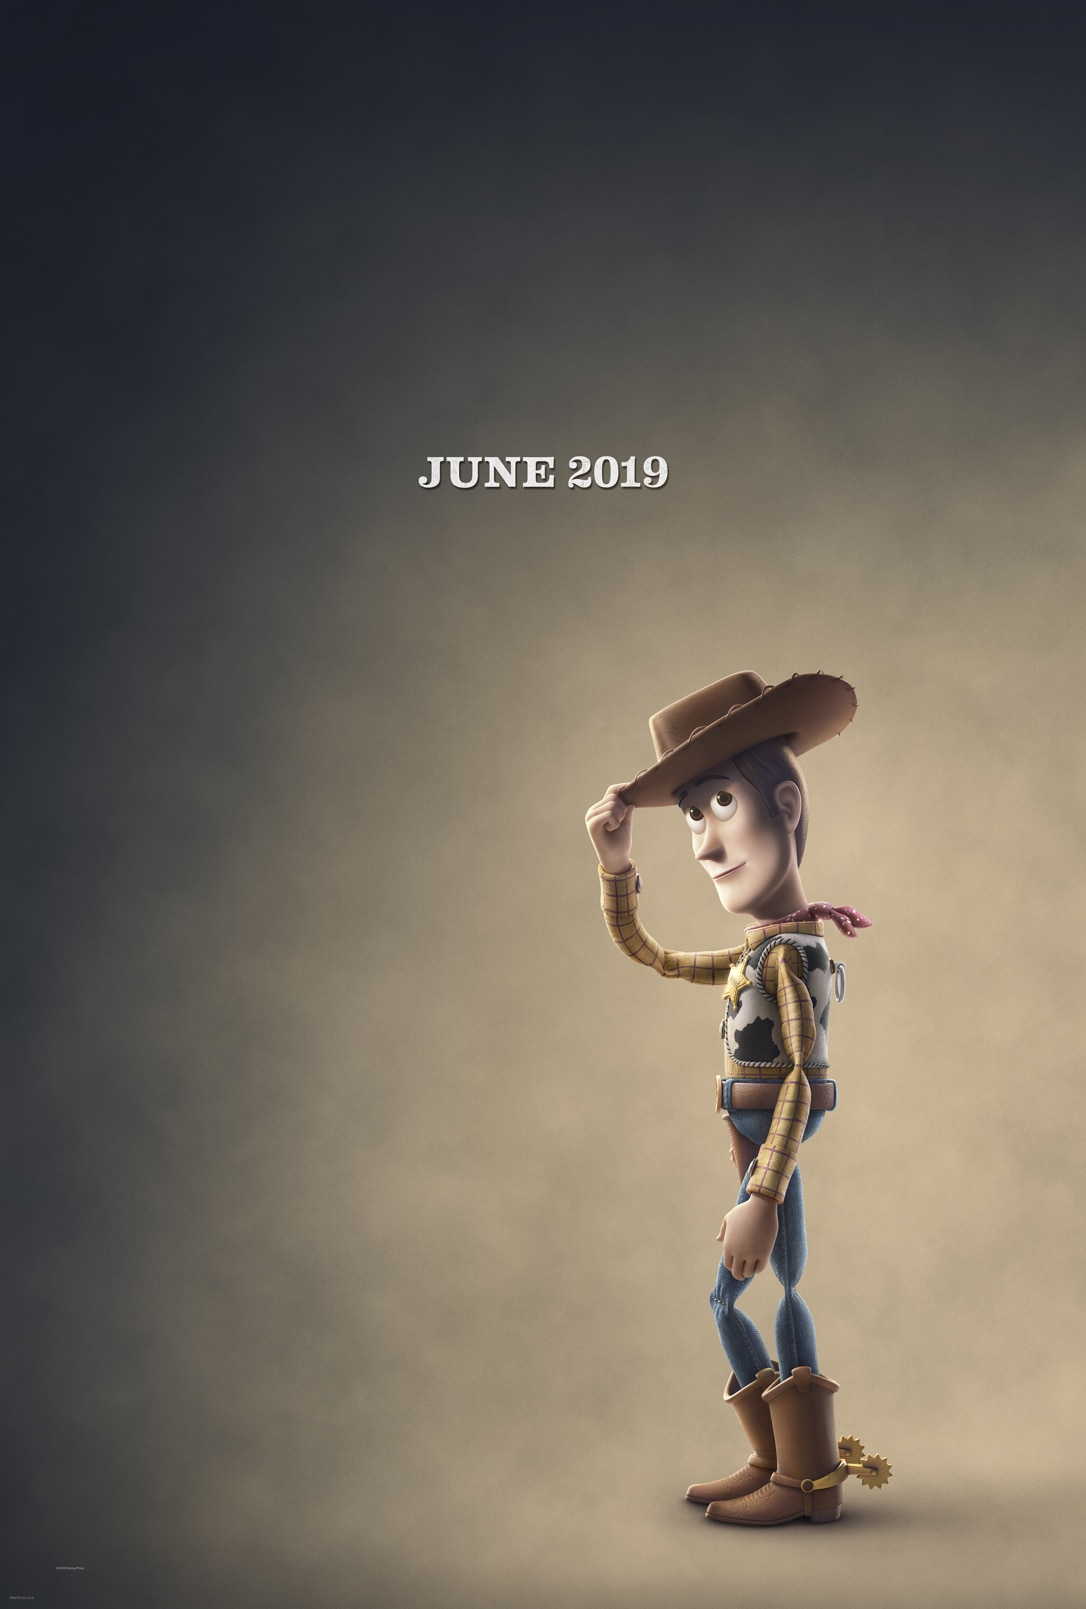 Toy Story 4 Poster. TOY STORY 4 will be released in U.S. theaters on June 21, 2019.